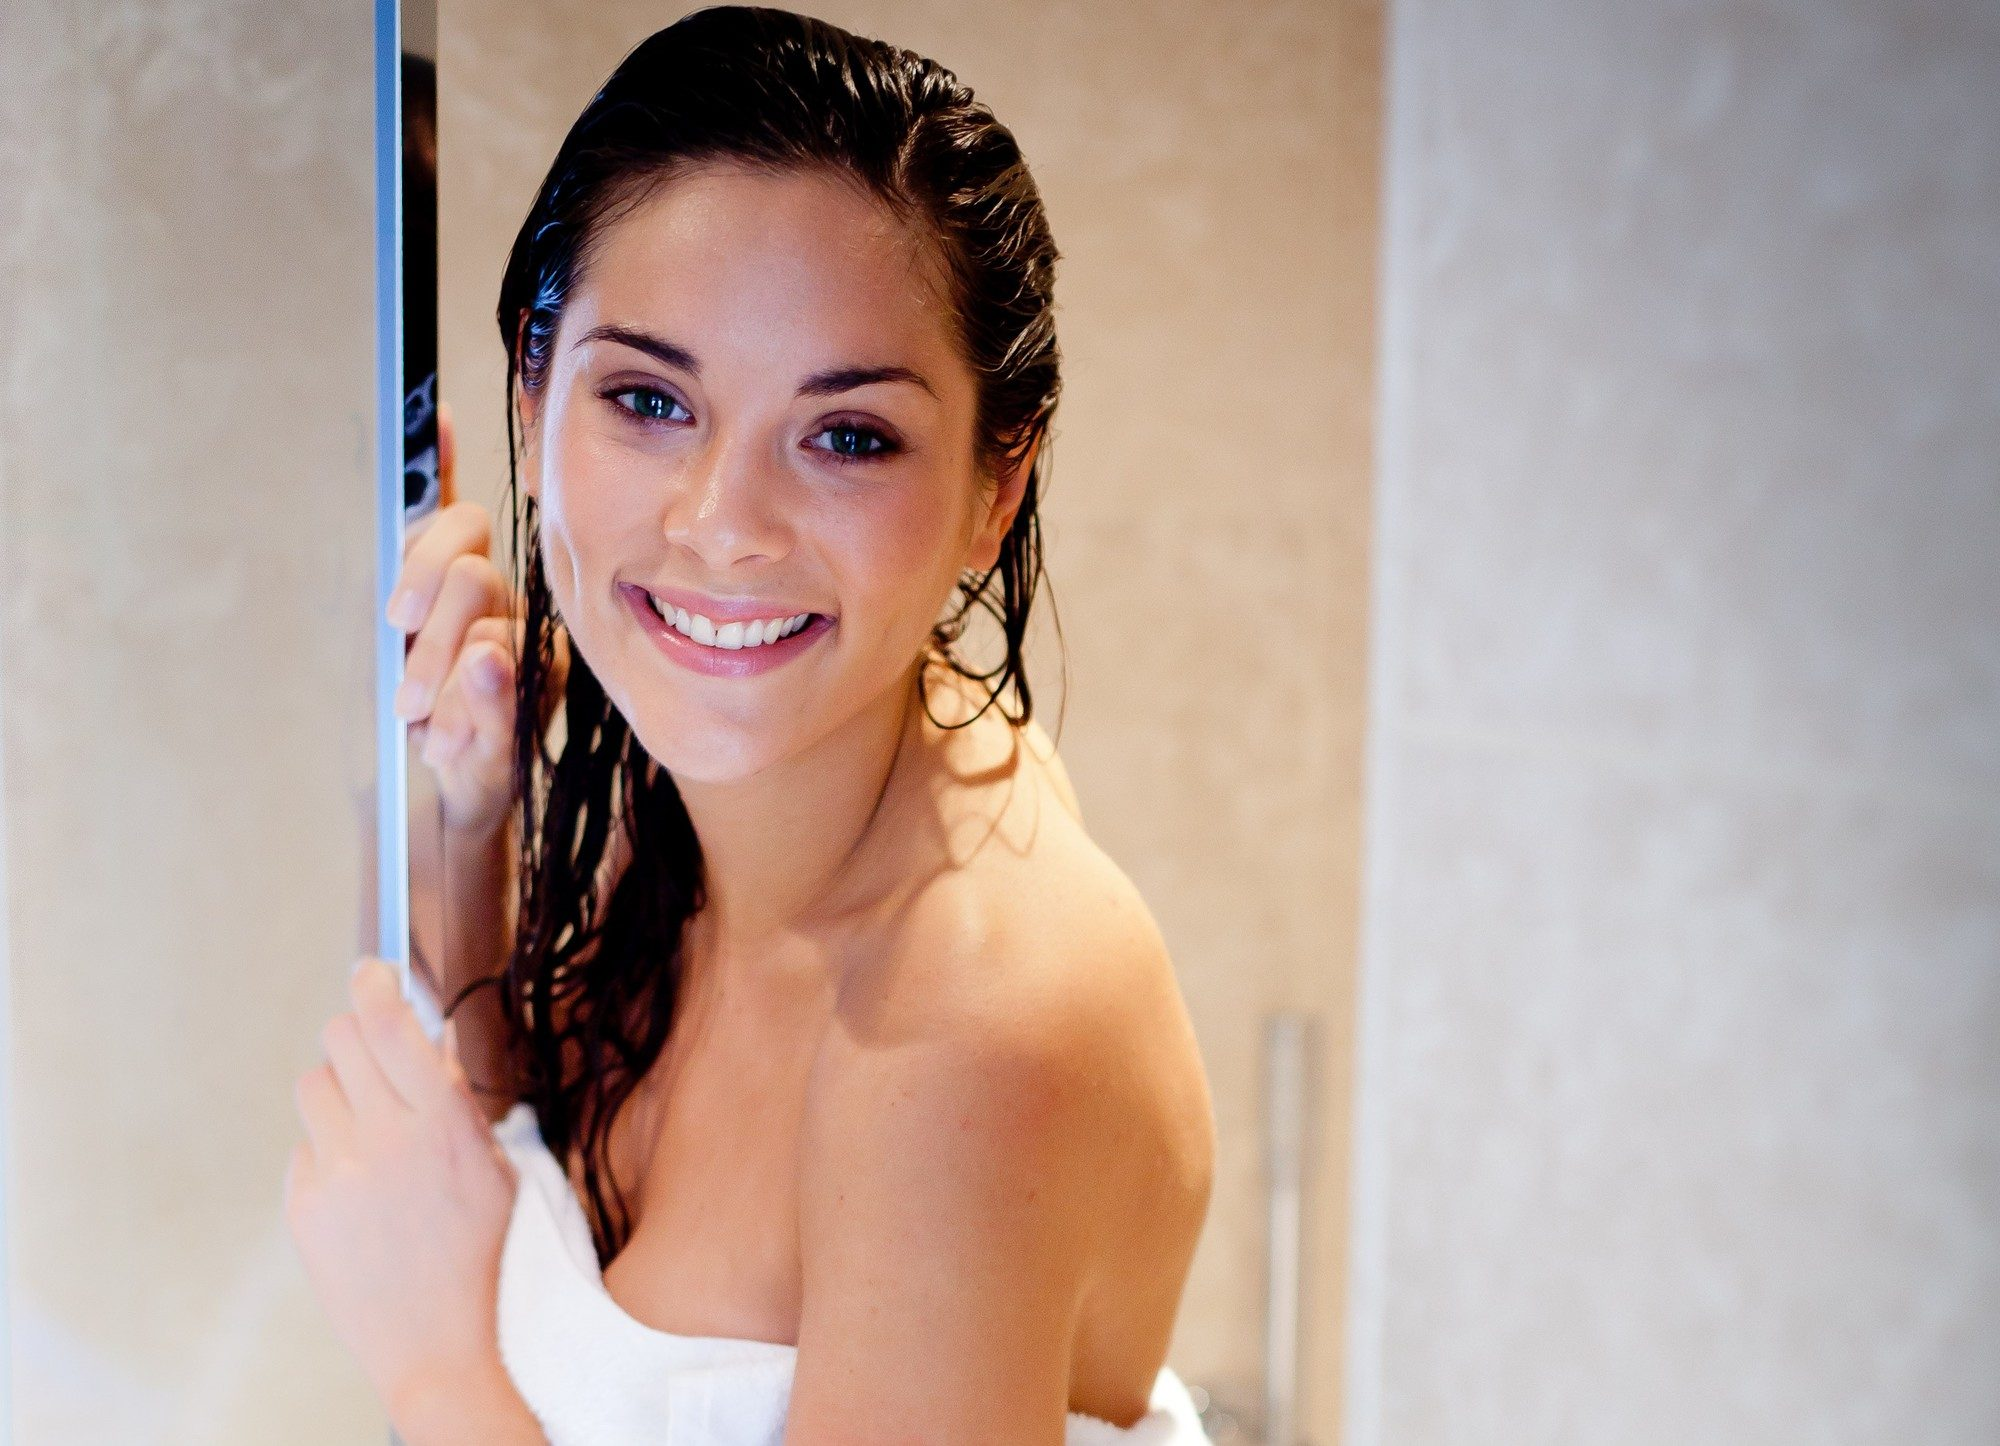 brunette woman in the shower in a towel with wet hair